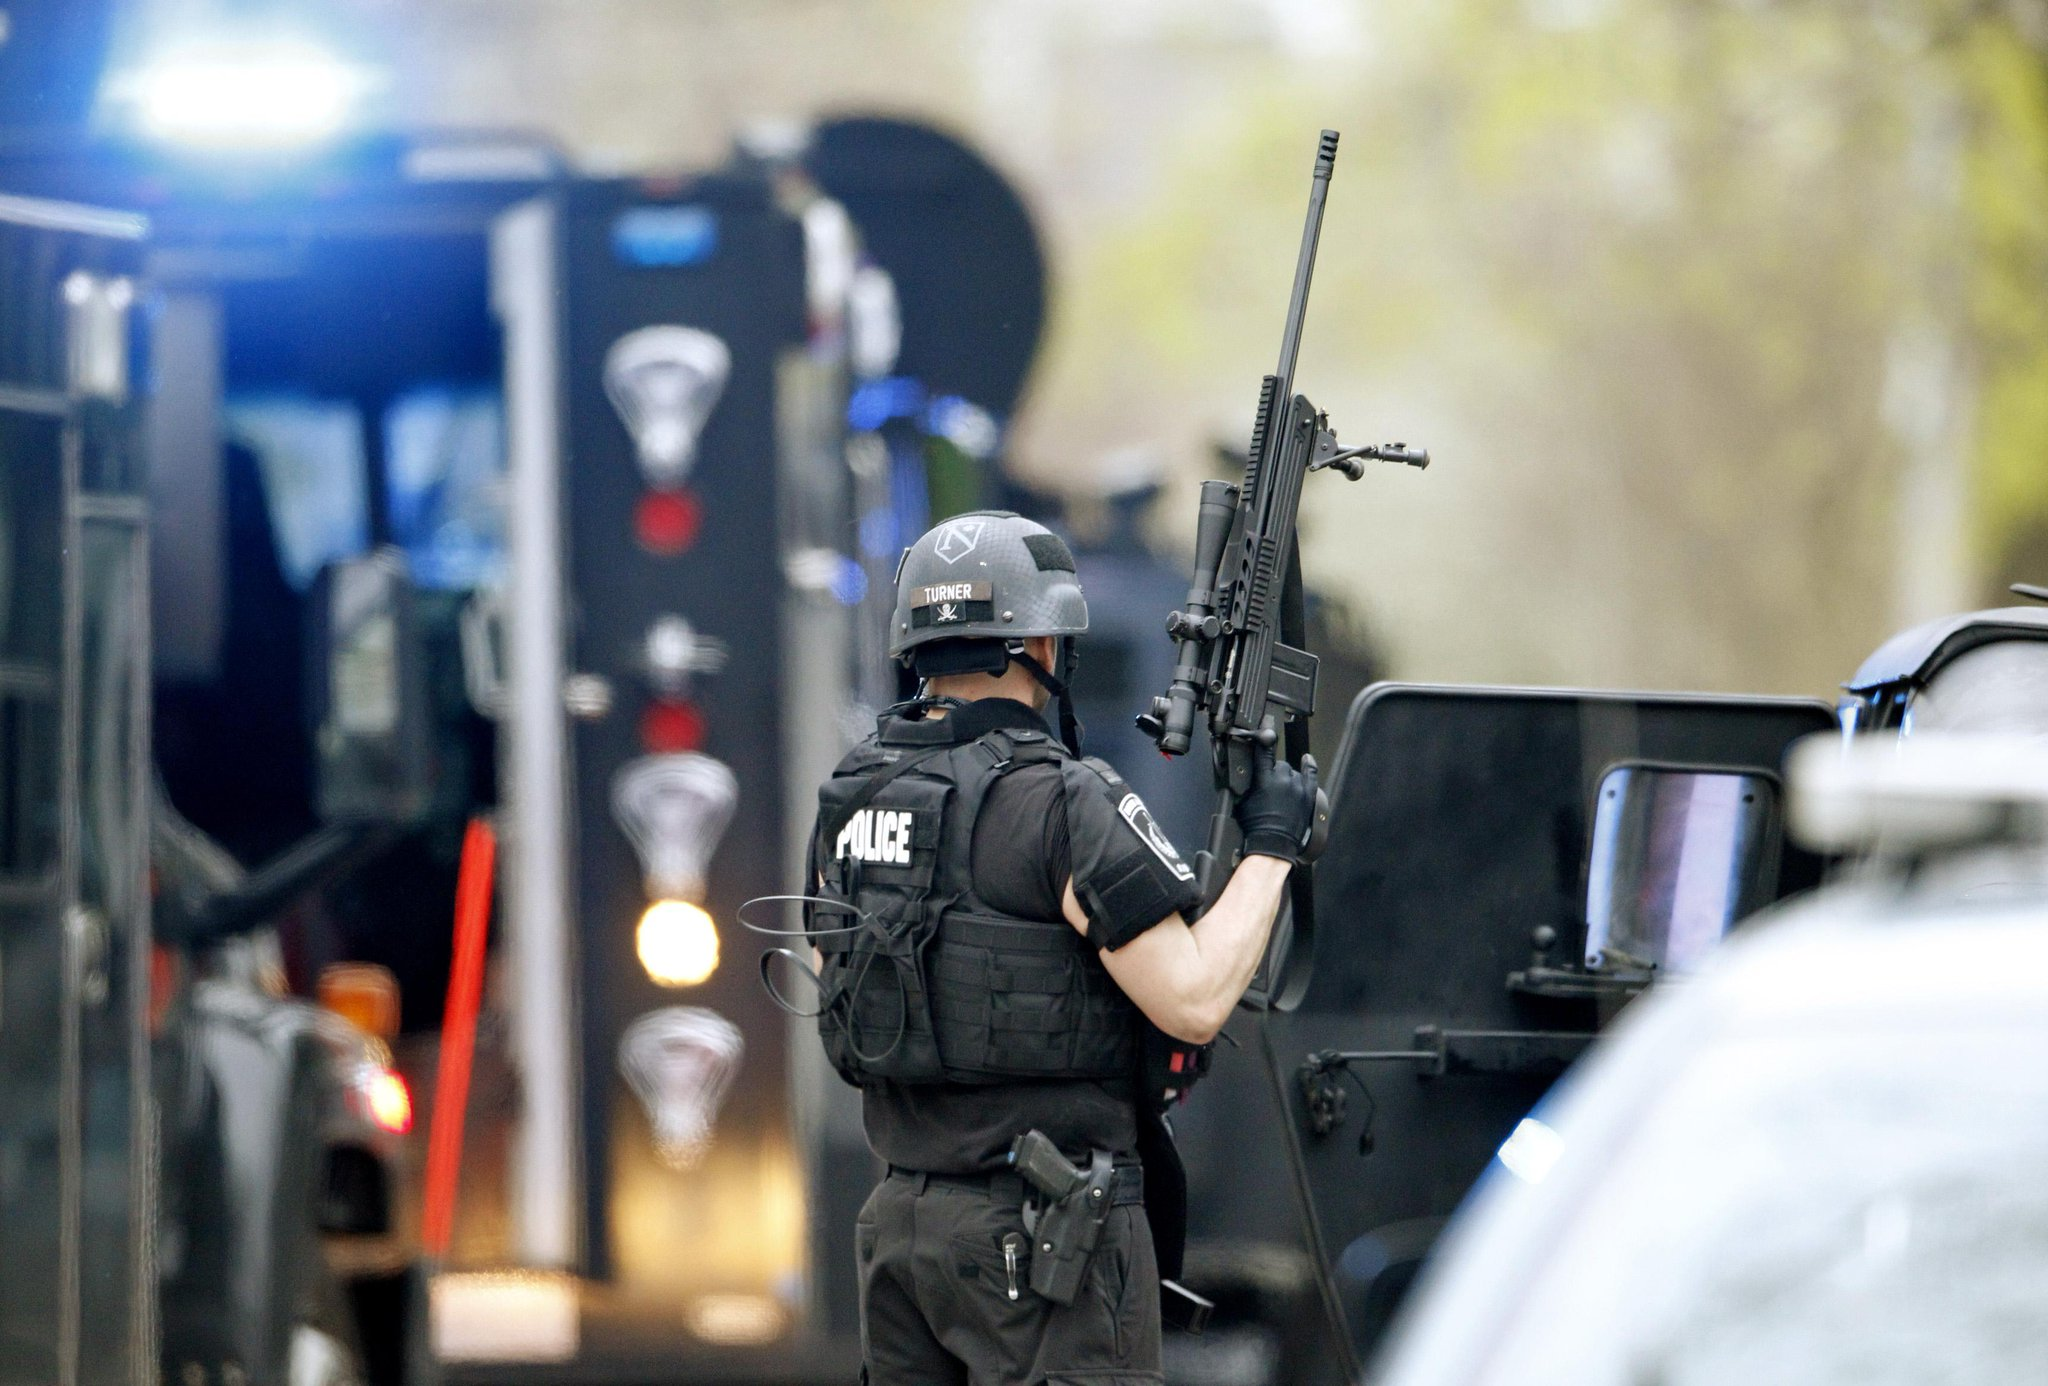 Twitter / BostonGlobe: PHOTO: A police SWAT team member ...